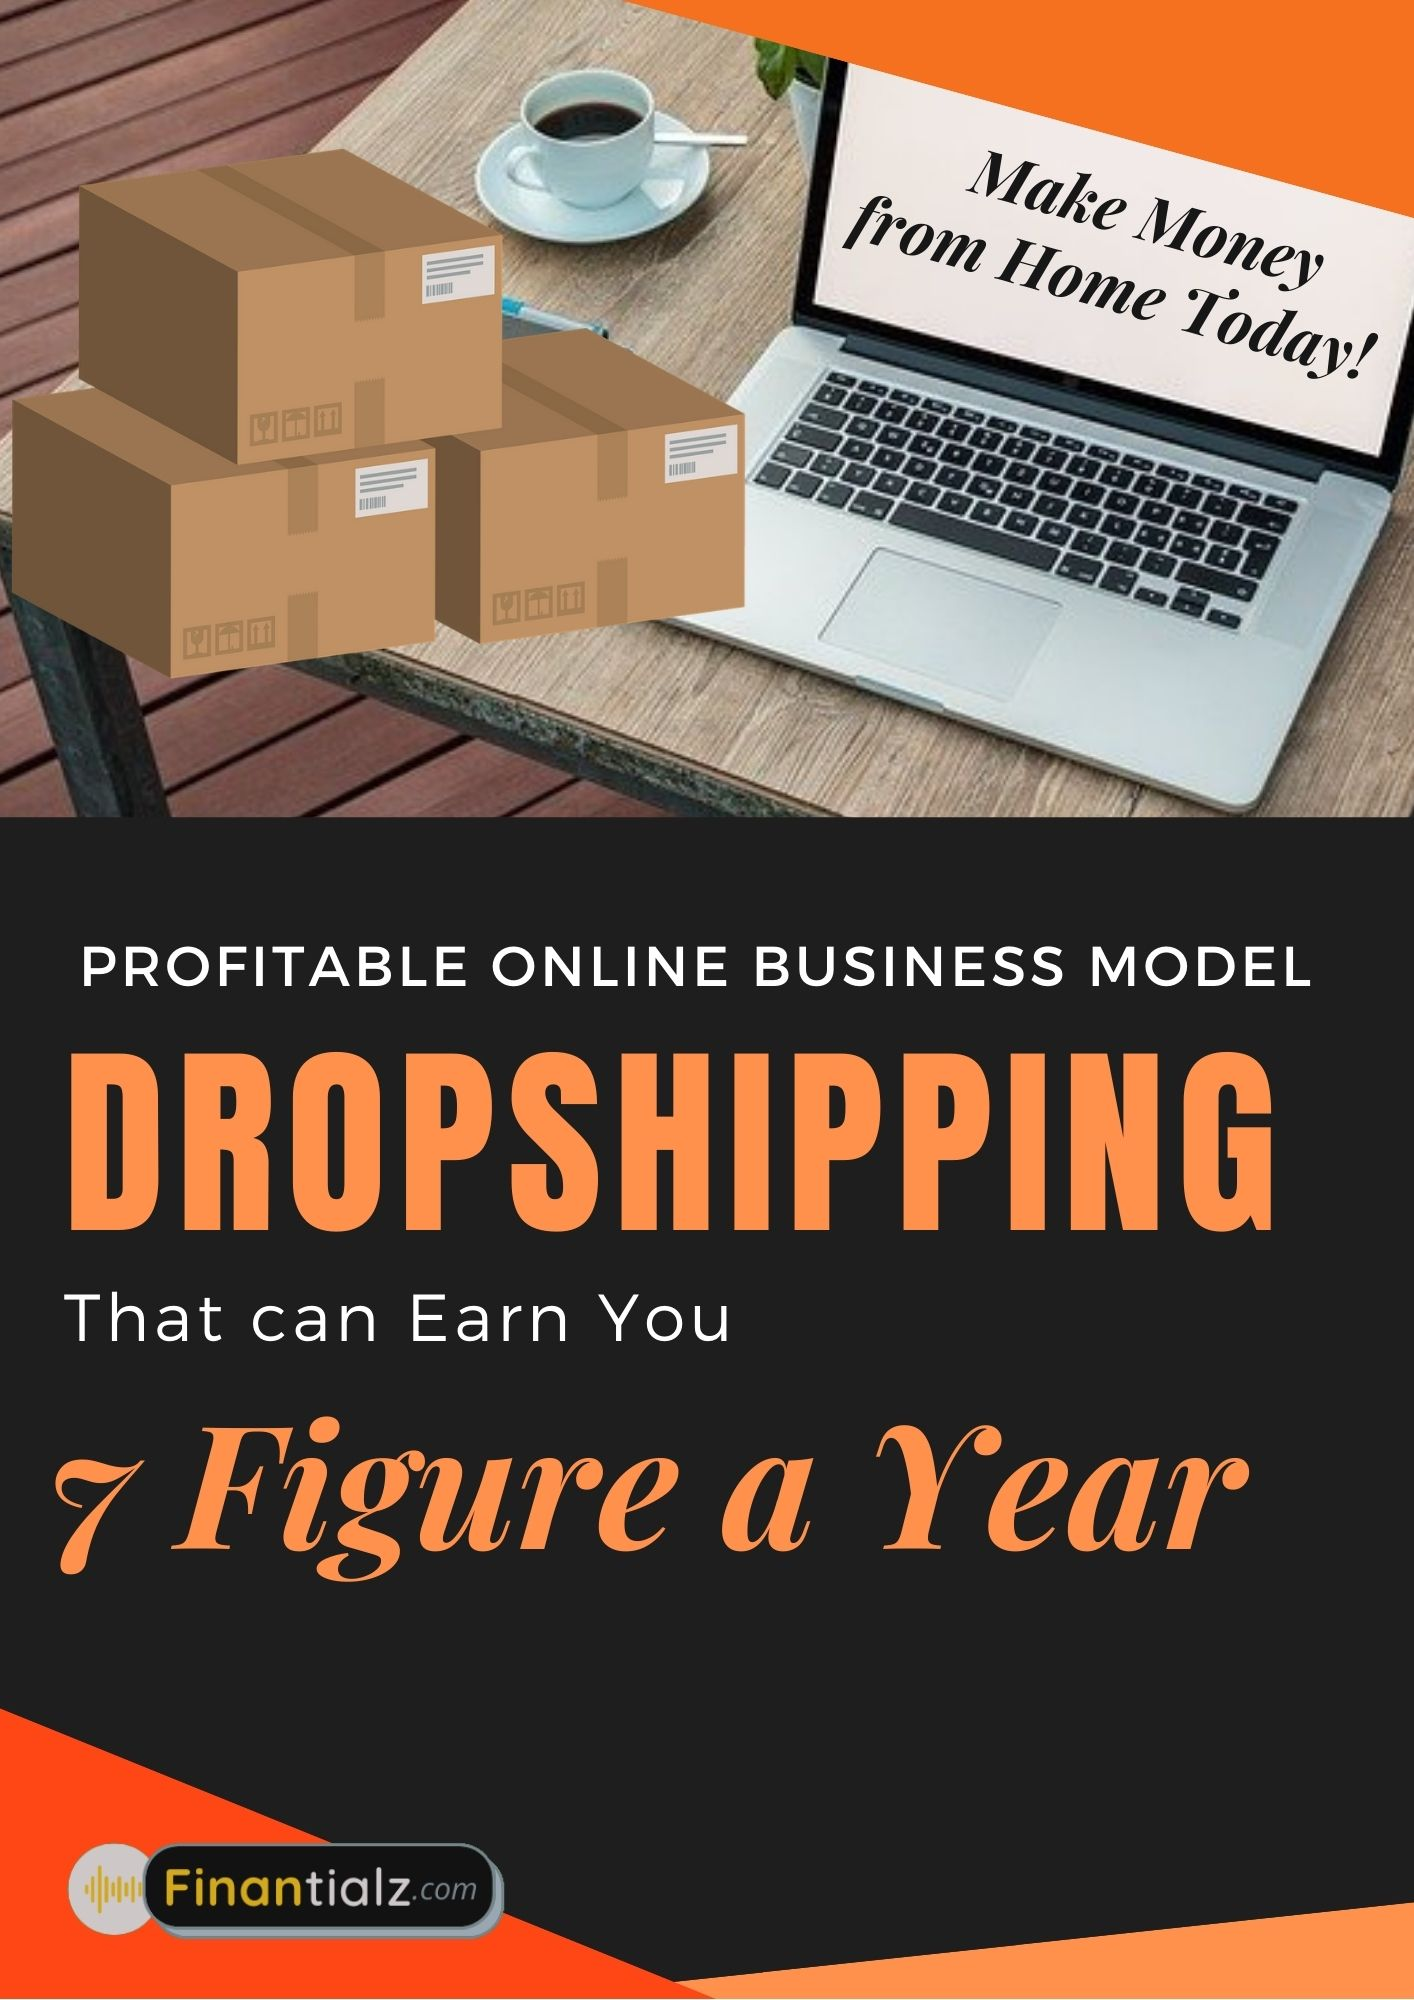 Dropshipping - Profitable Online Business Model. A 7-8 Figure a Year Business